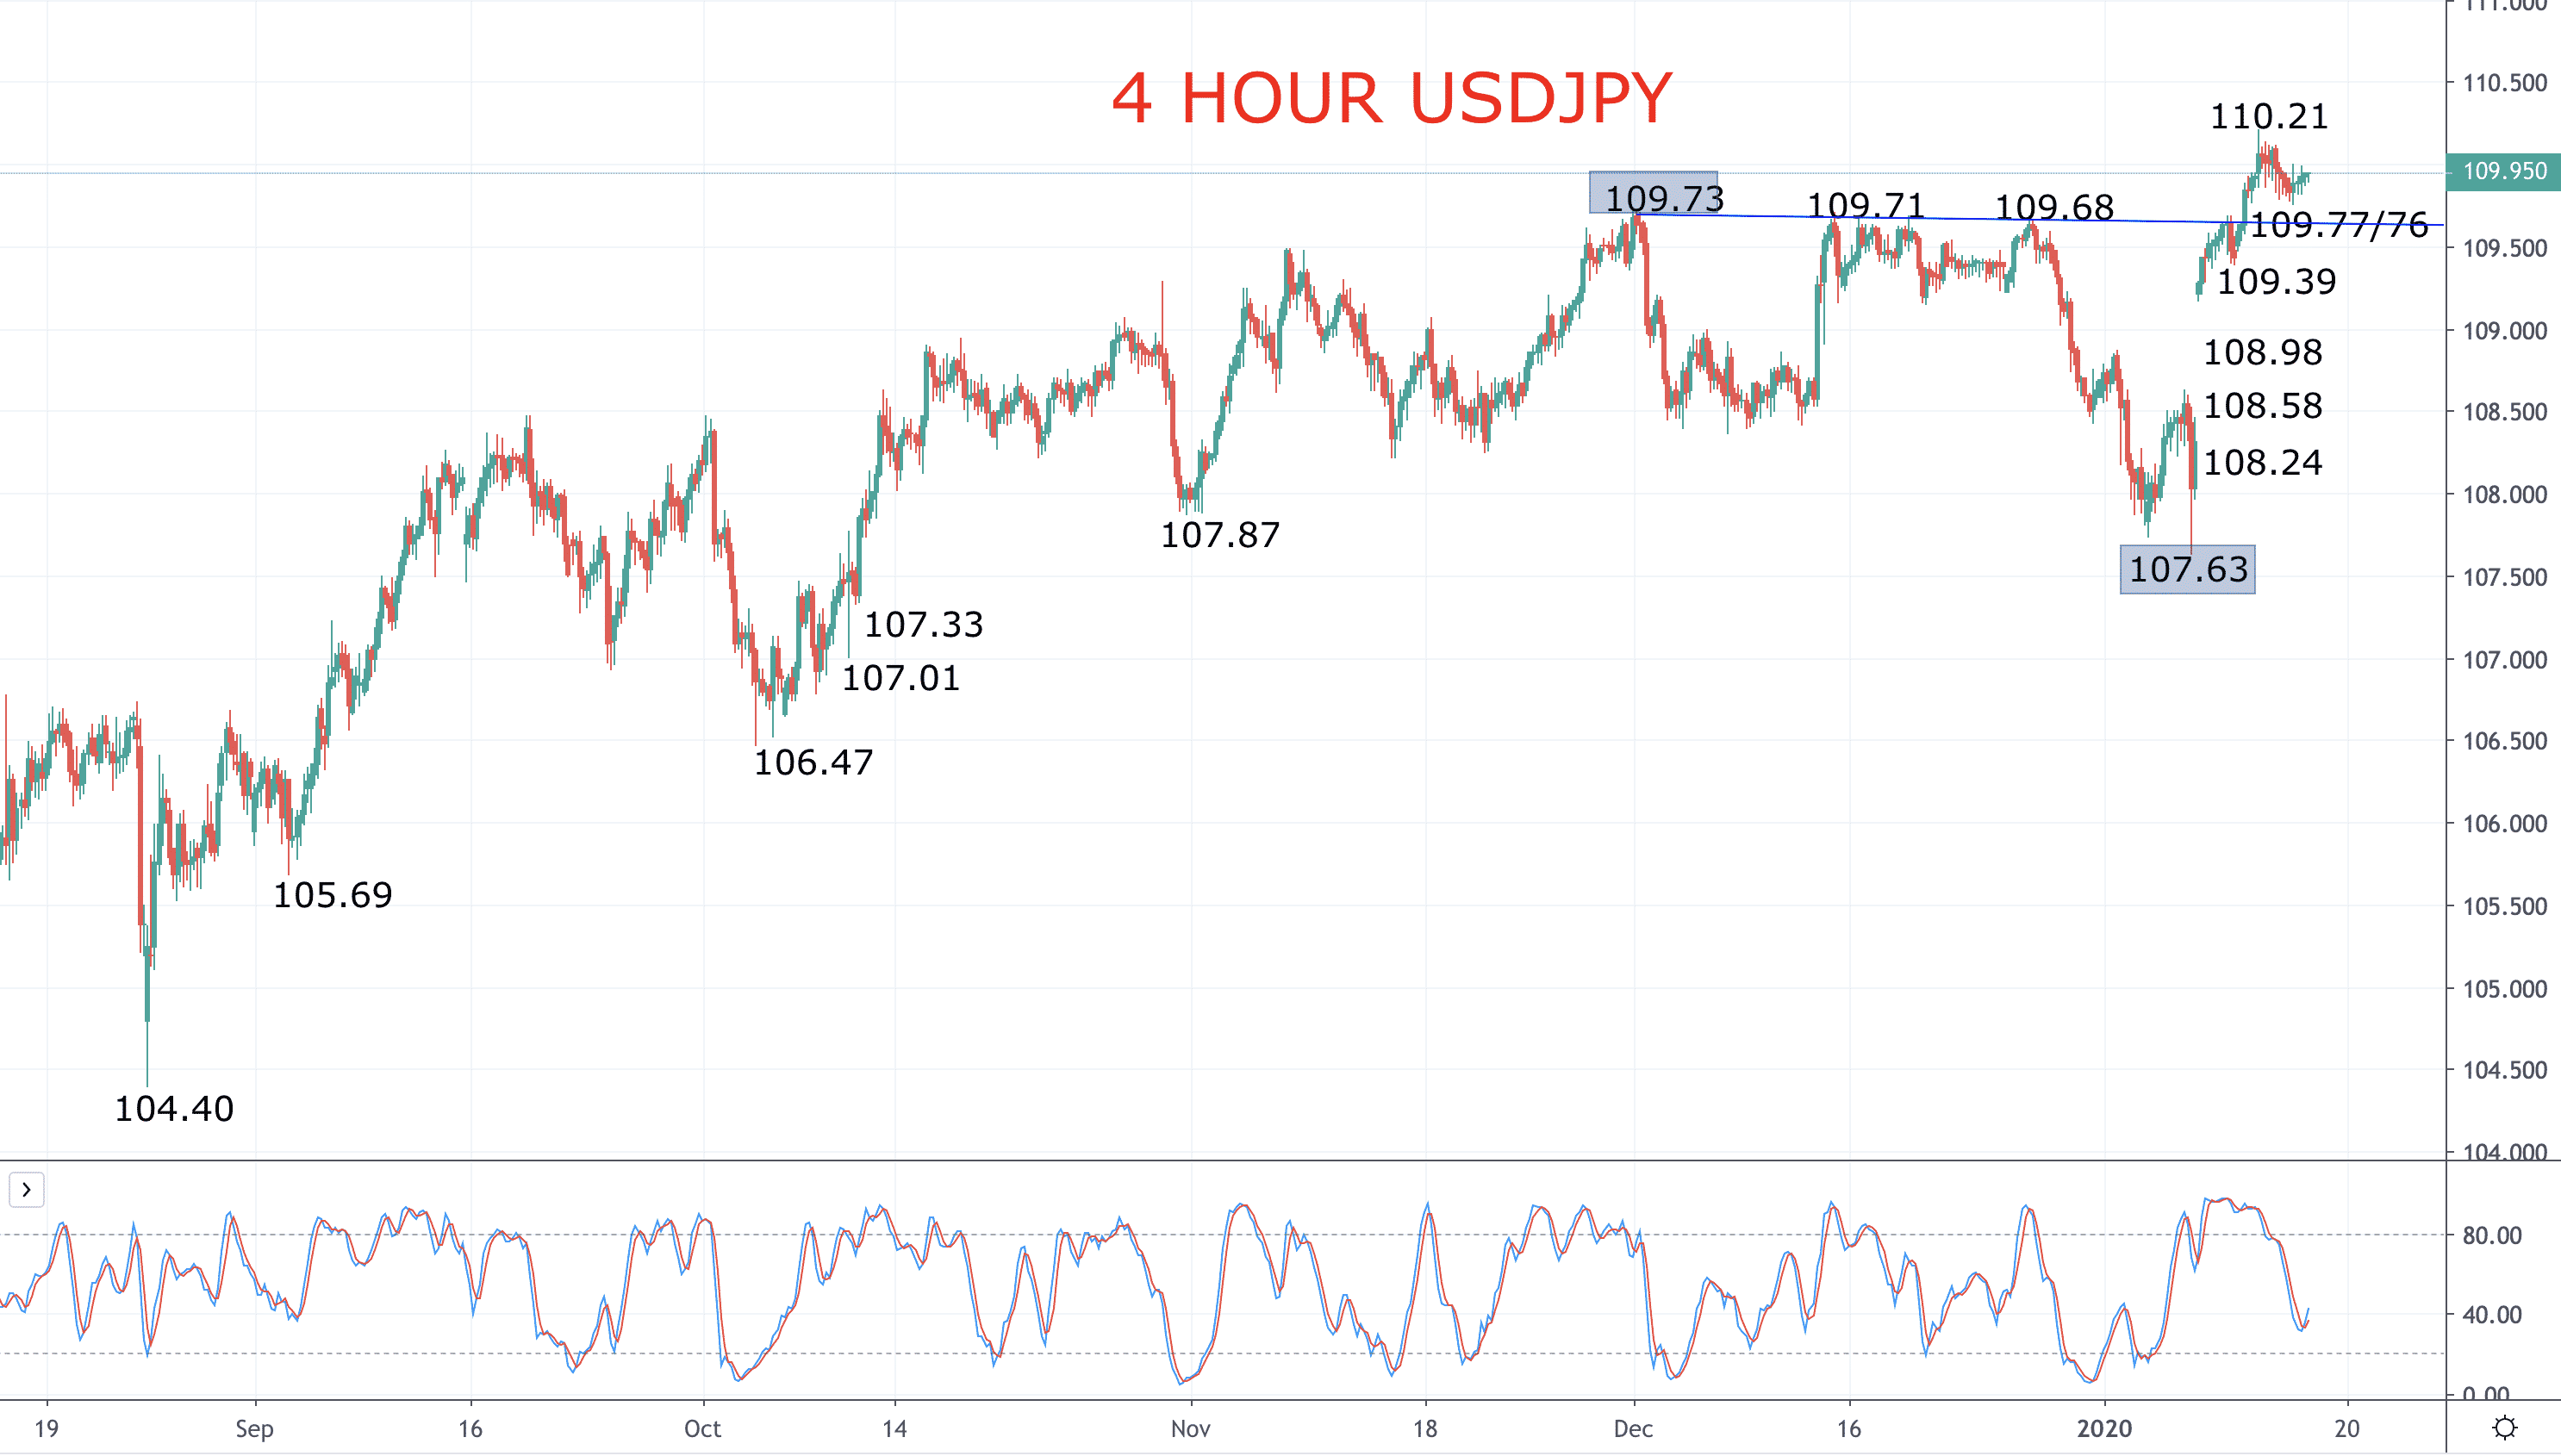 """Risk on"" theme points the Japanese Yen lower (USDJPY forecast) Image"